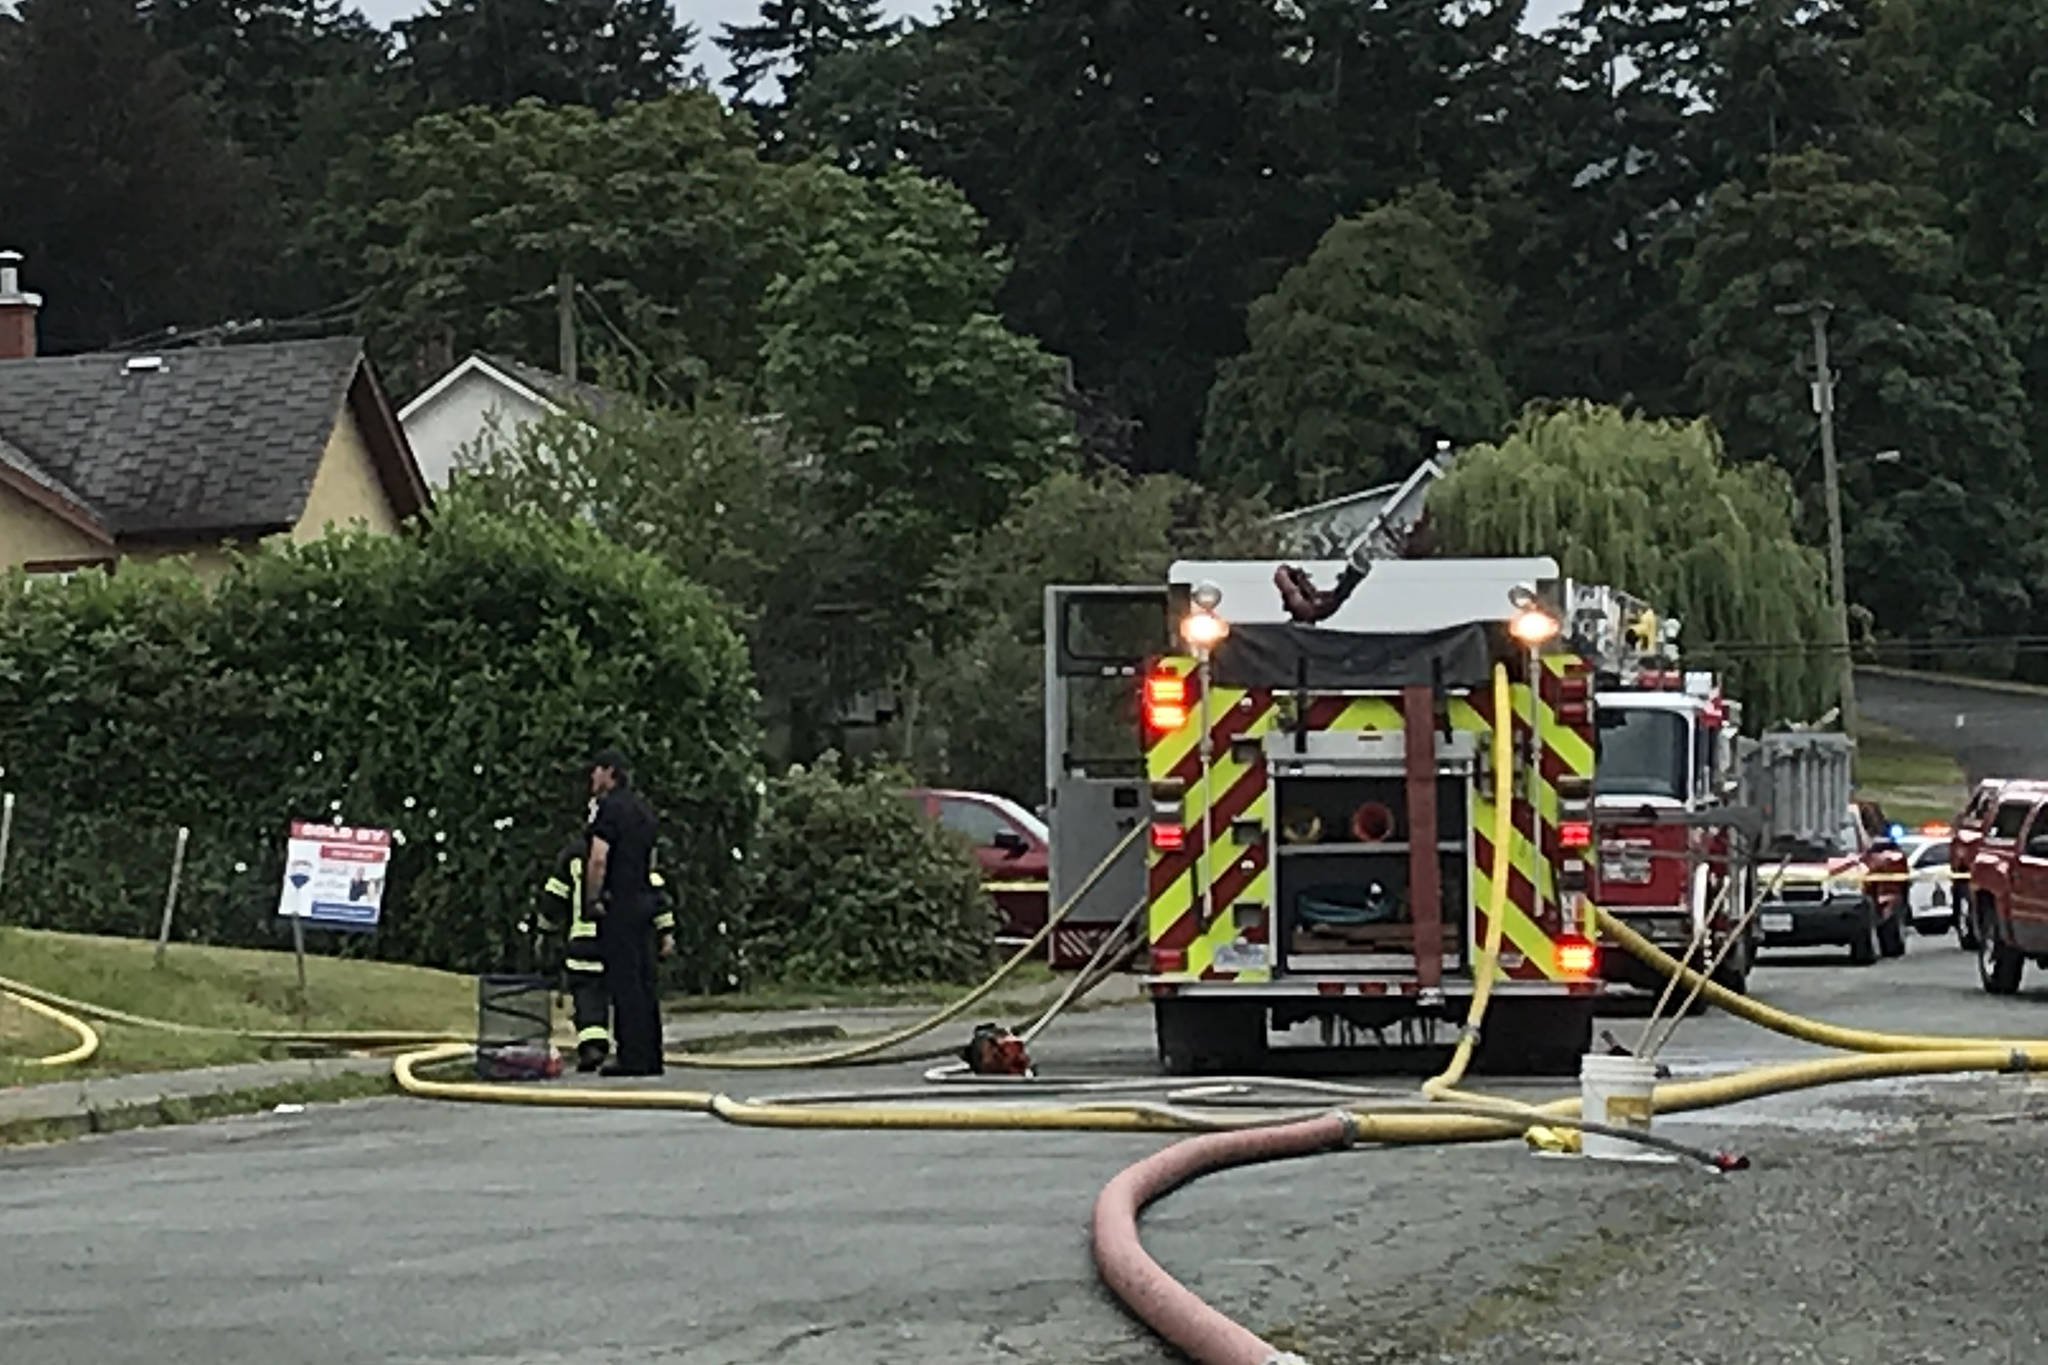 Police, fire and ambulance crews respond to a structure fire in the 3600-block of Fifth Avenue in Port Alberni on Saturday, July 11, 2020. (SUSAN QUINN/ Alberni Valley News)